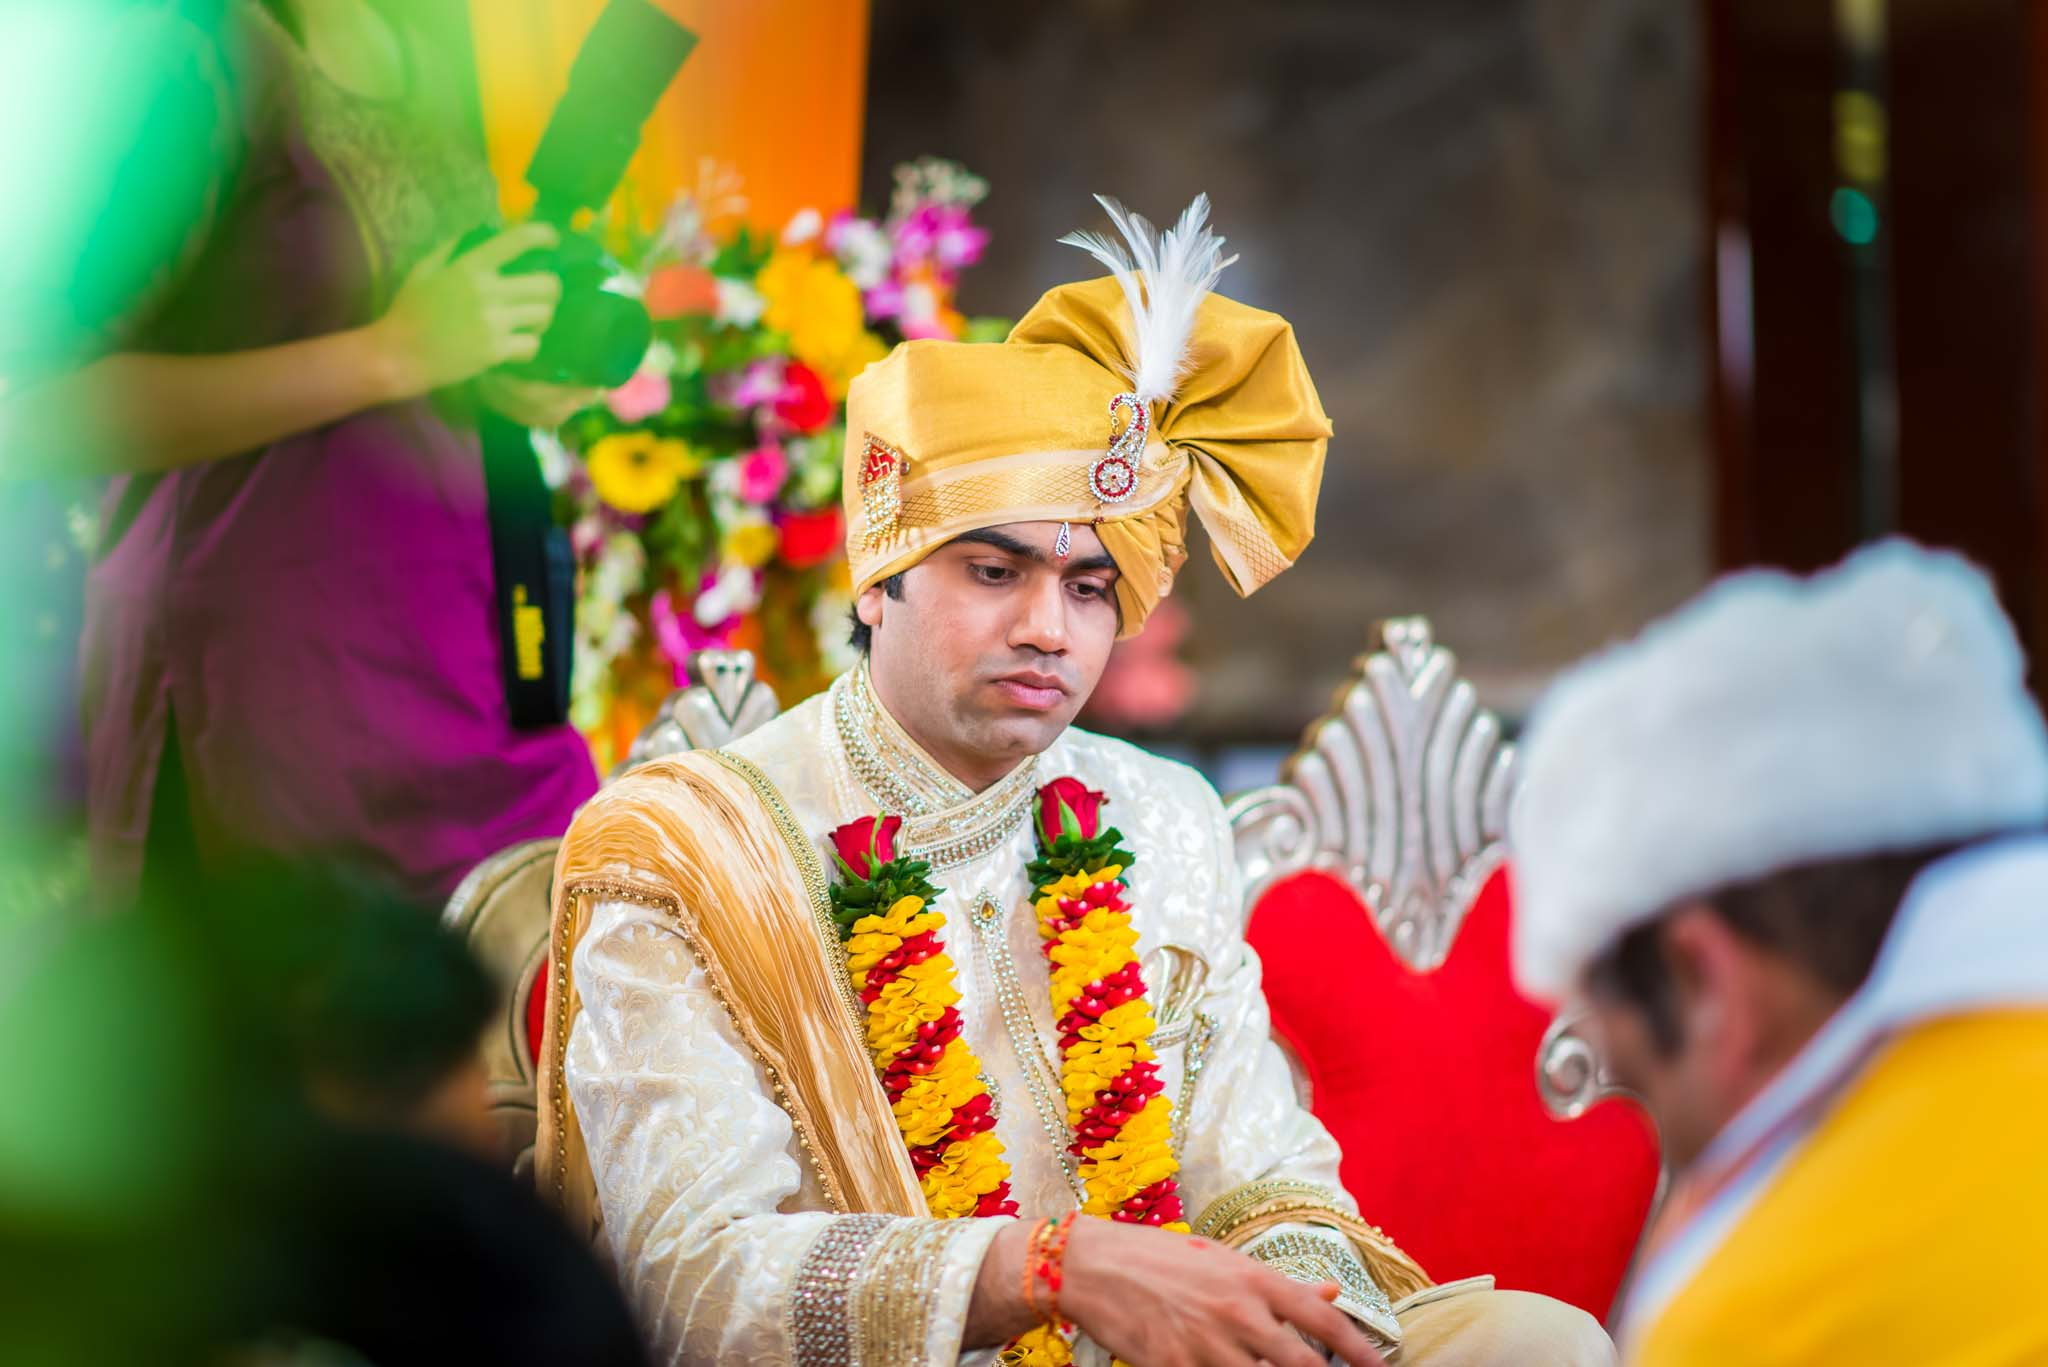 Candid-Wedding-Photography-Nagpur-Destination-70